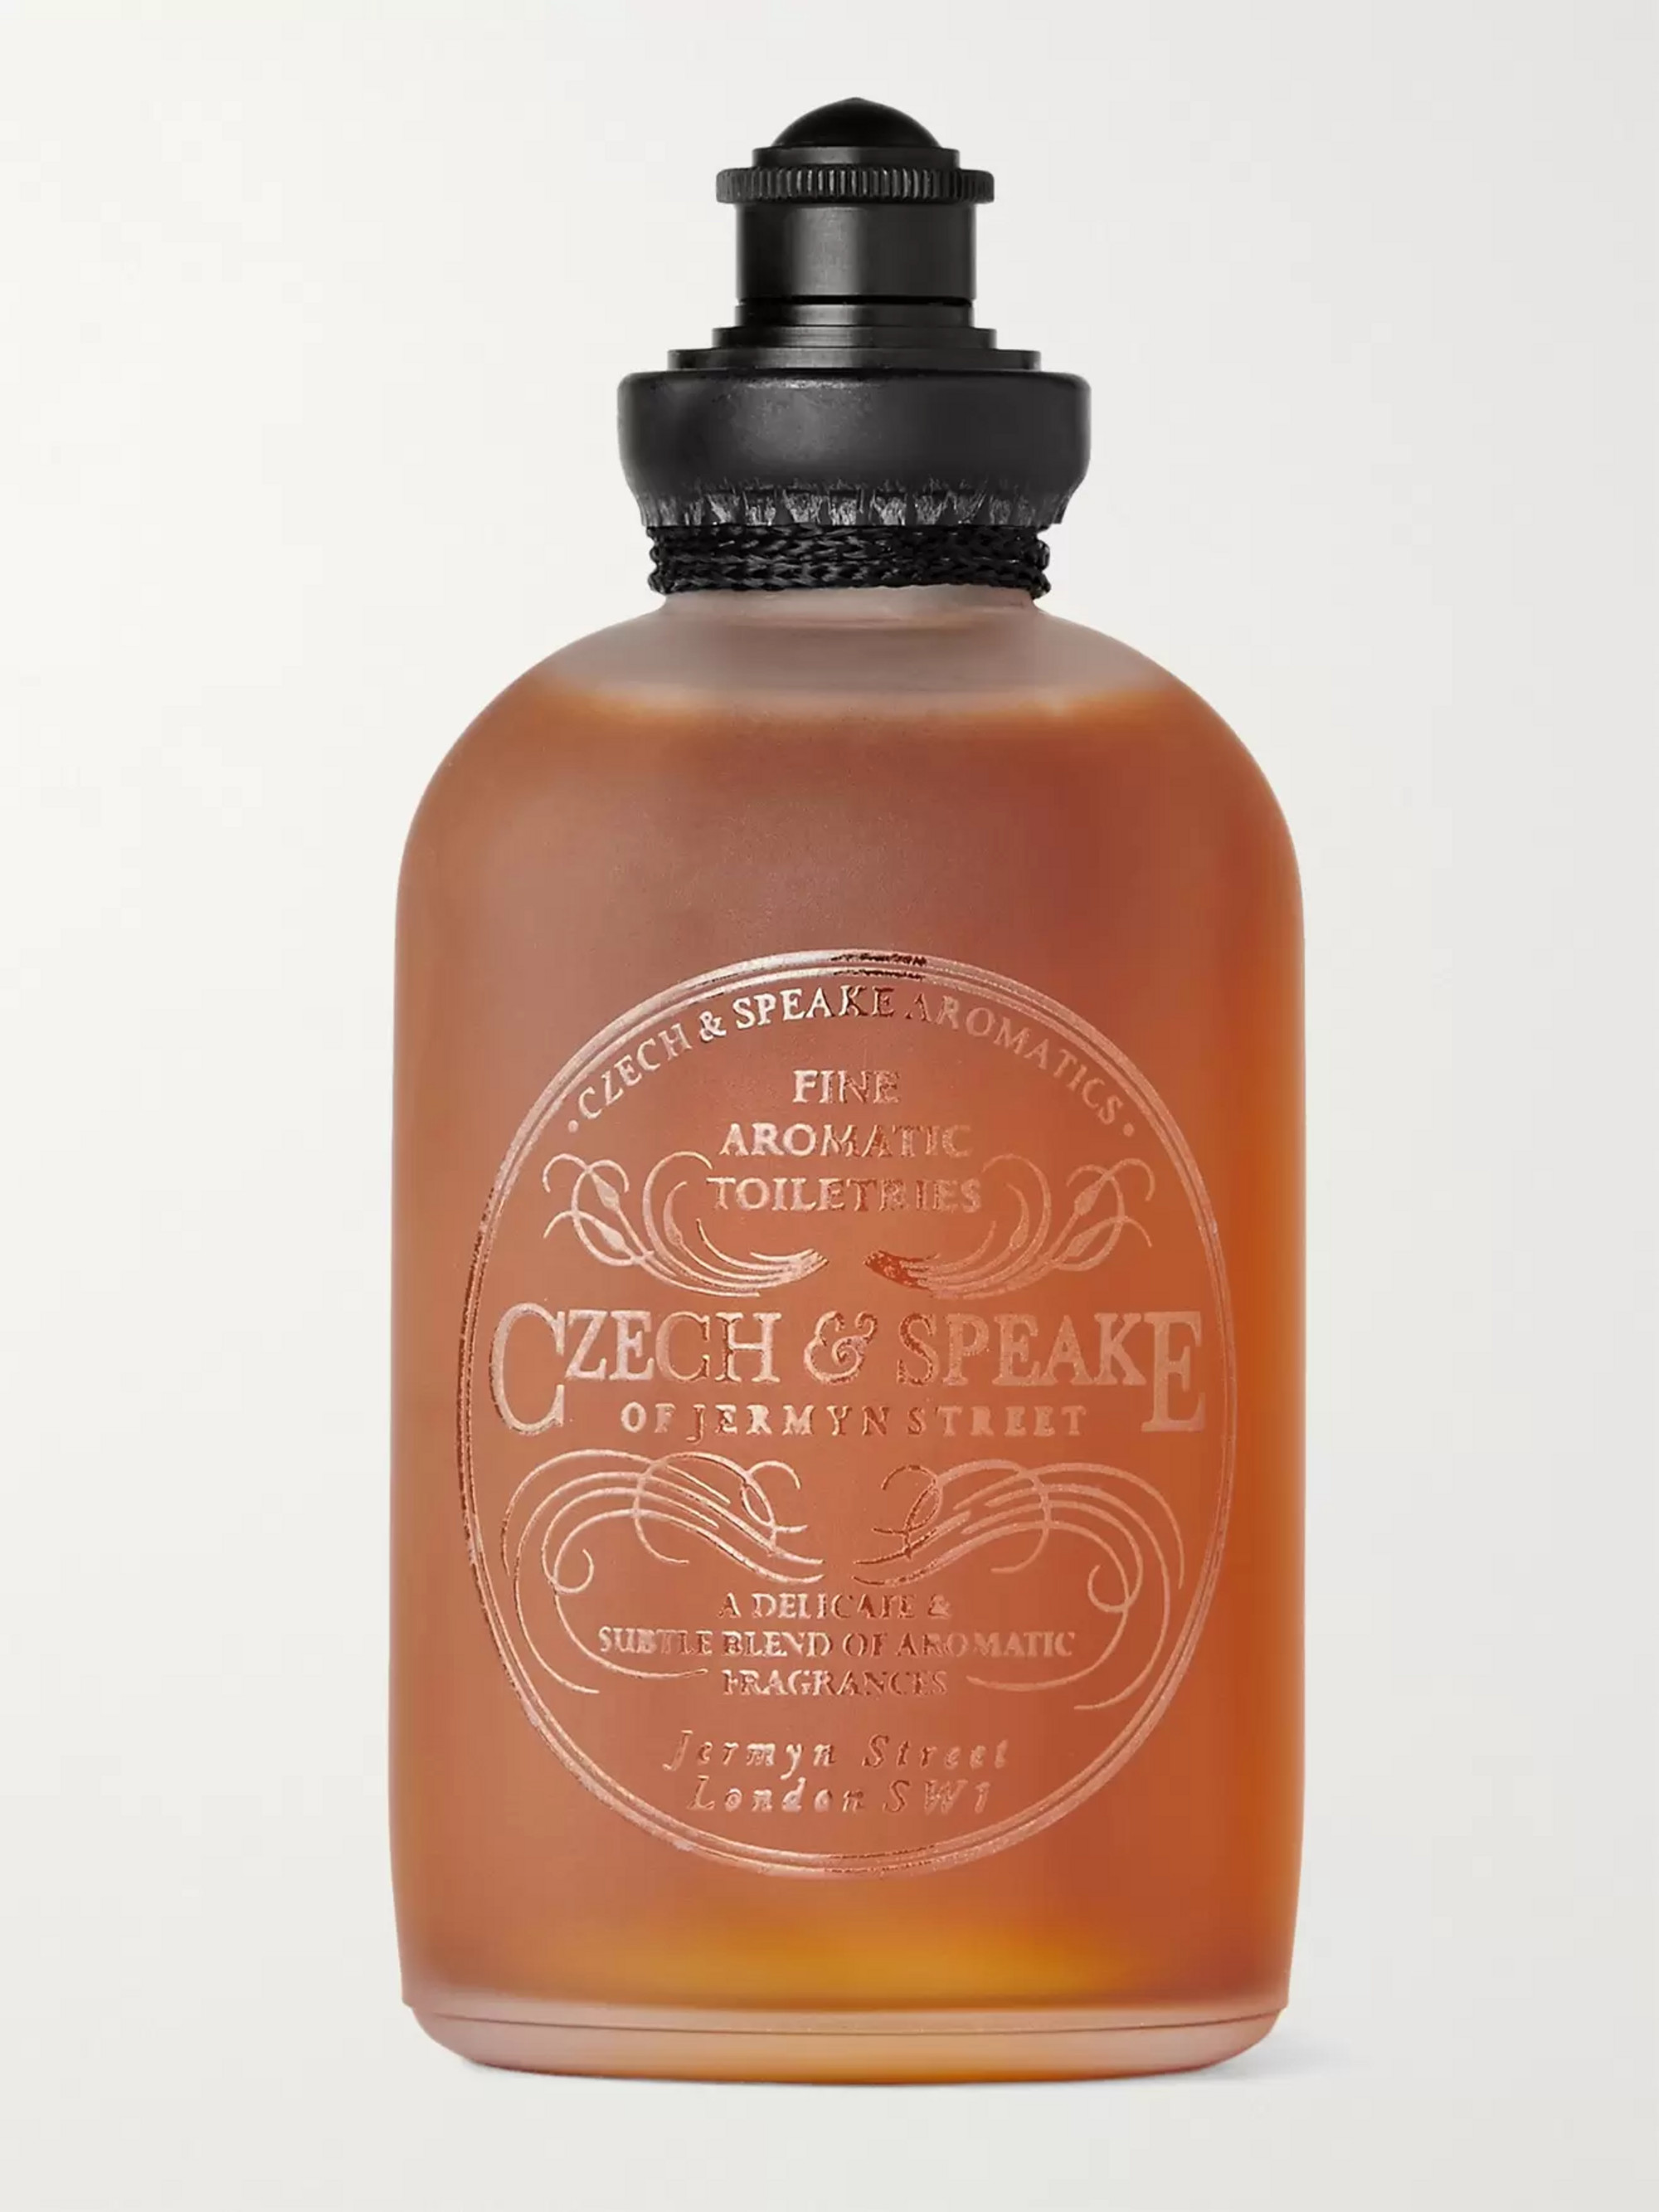 Czech & Speake Neroli Moisturising Body & Bathing Oil, 50ml